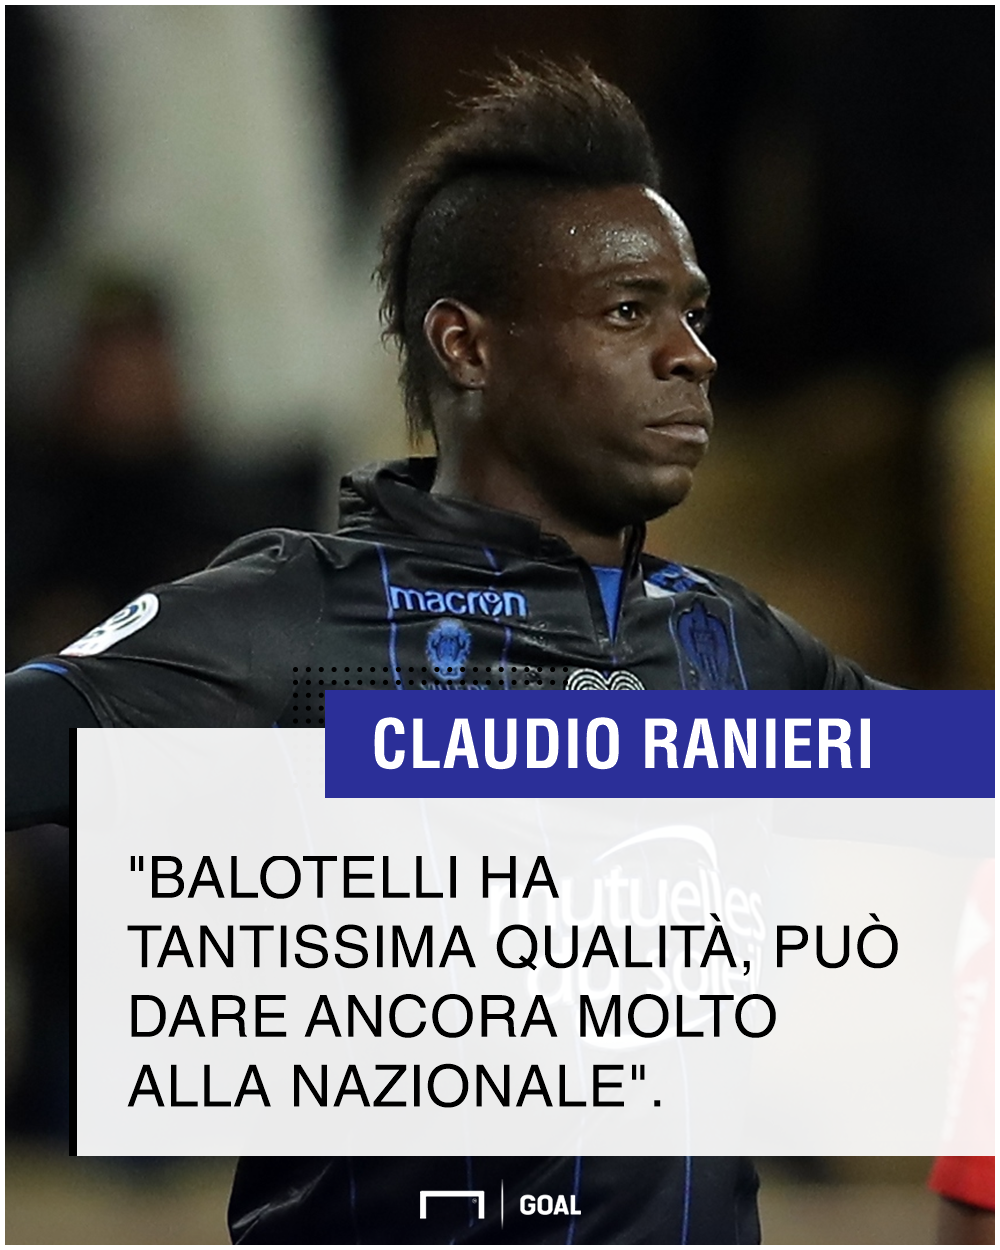 https://images.performgroup.com/di/library/GOAL/e2/6/ranieri-su-balotelli-ps-ita_xoicl98ethh411ingkh10nugk.png